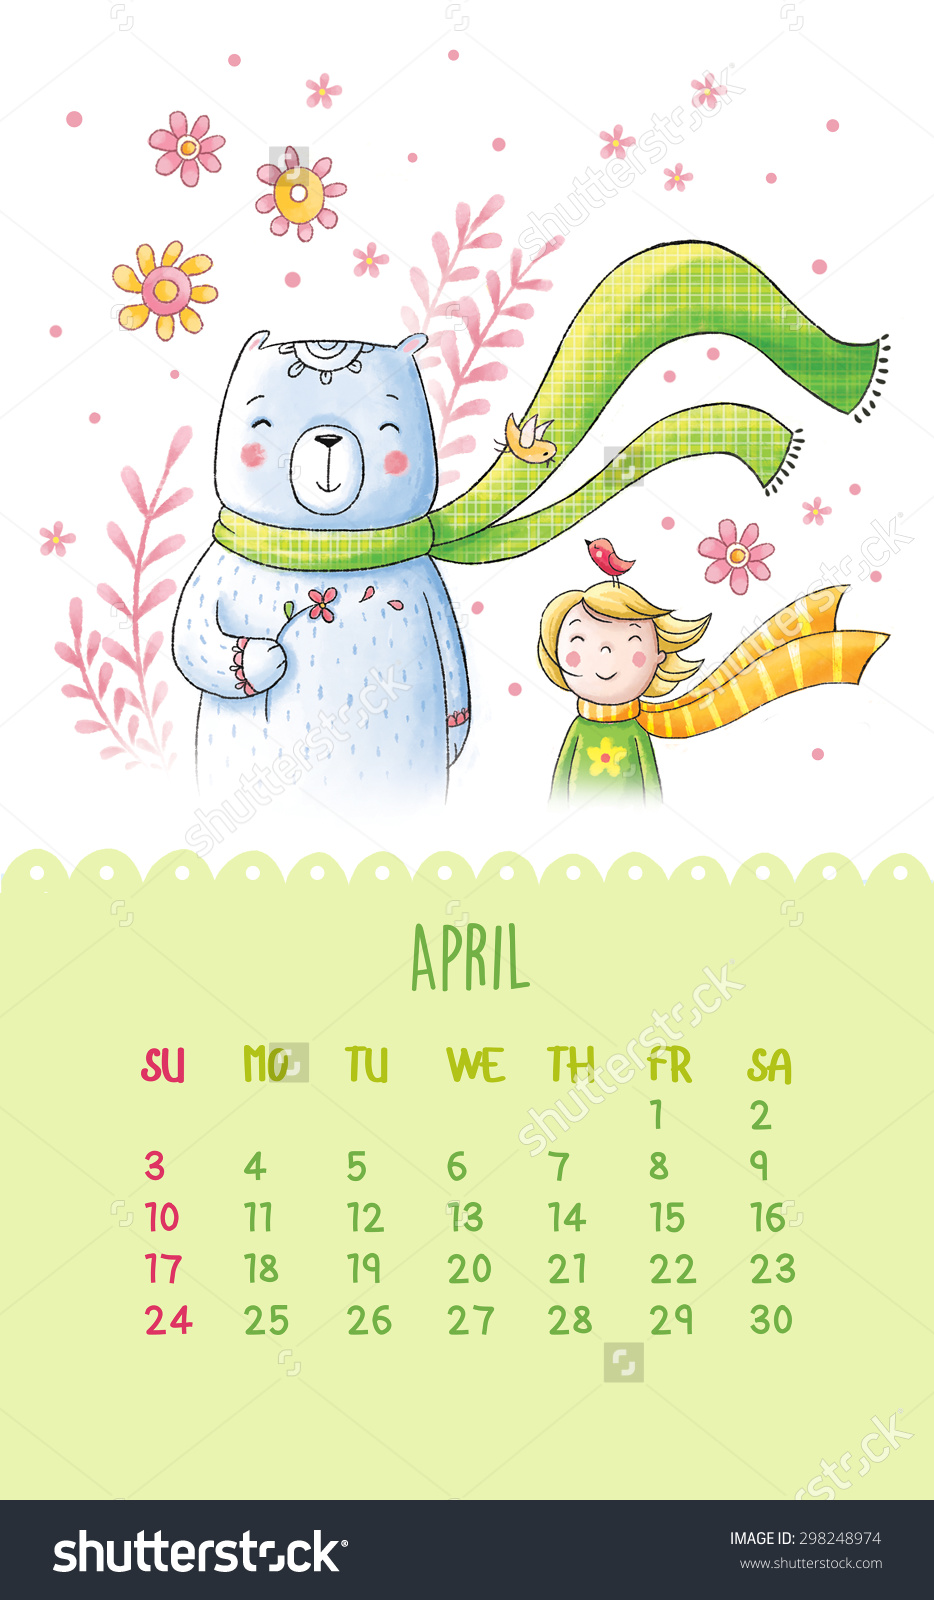 April pretty girl clipart graphic download Cute Calendar 2016 Hand Drawing Illustration Stock Illustration ... graphic download